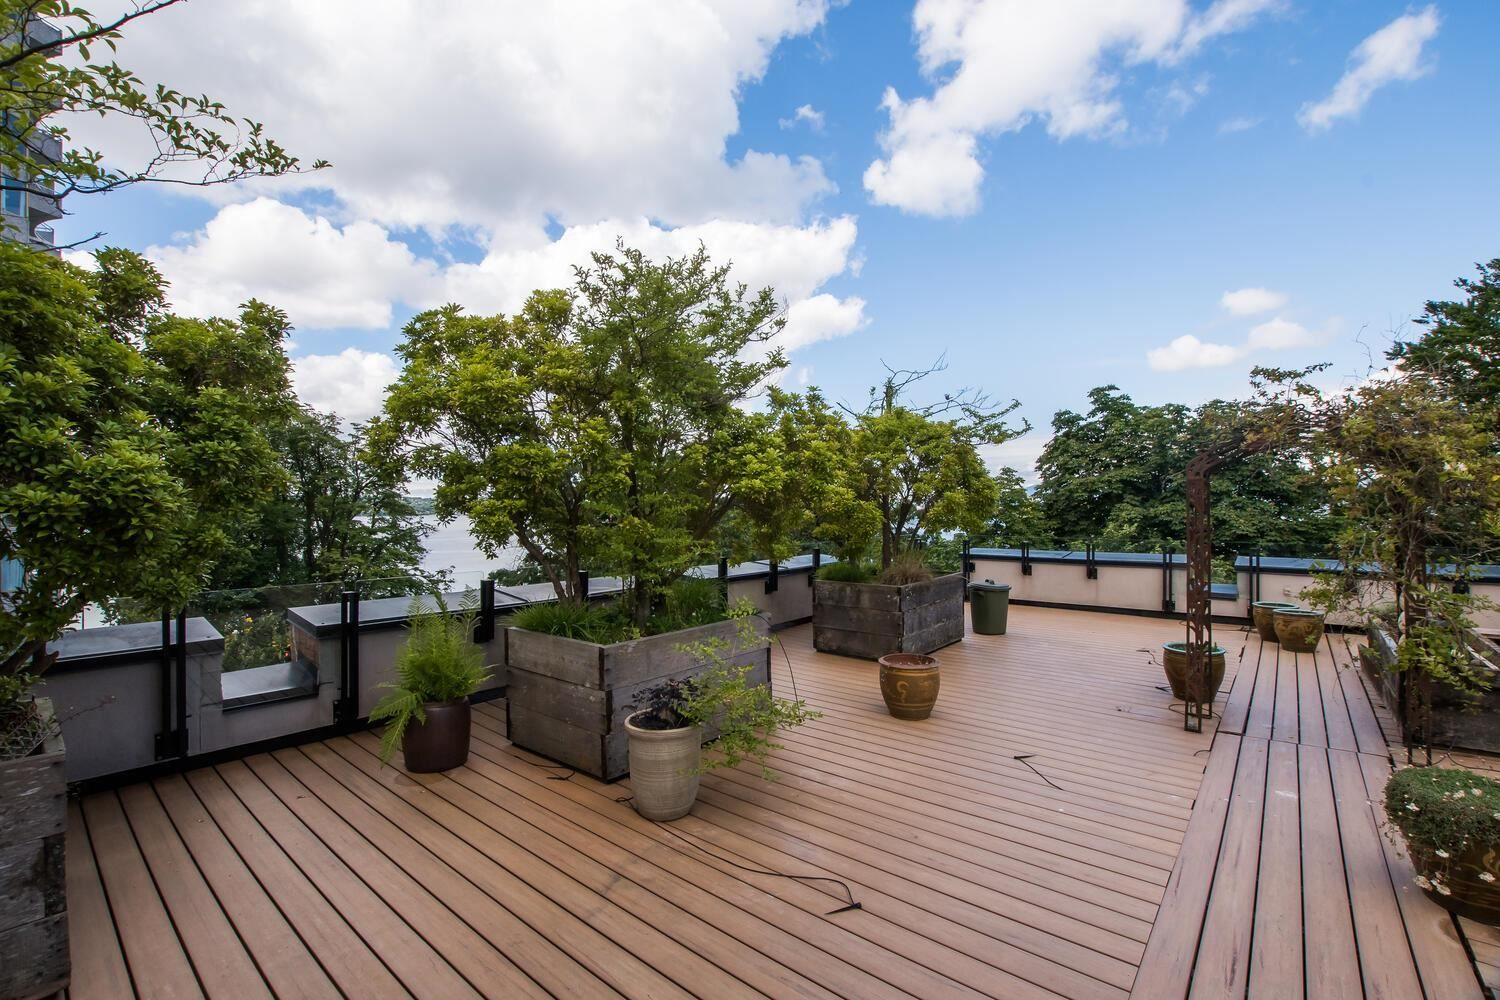 """Main Photo: 3 1691 HARWOOD Street in Vancouver: West End VW Condo for sale in """"ENGLISH BAY/WEST END"""" (Vancouver West)  : MLS®# R2595705"""